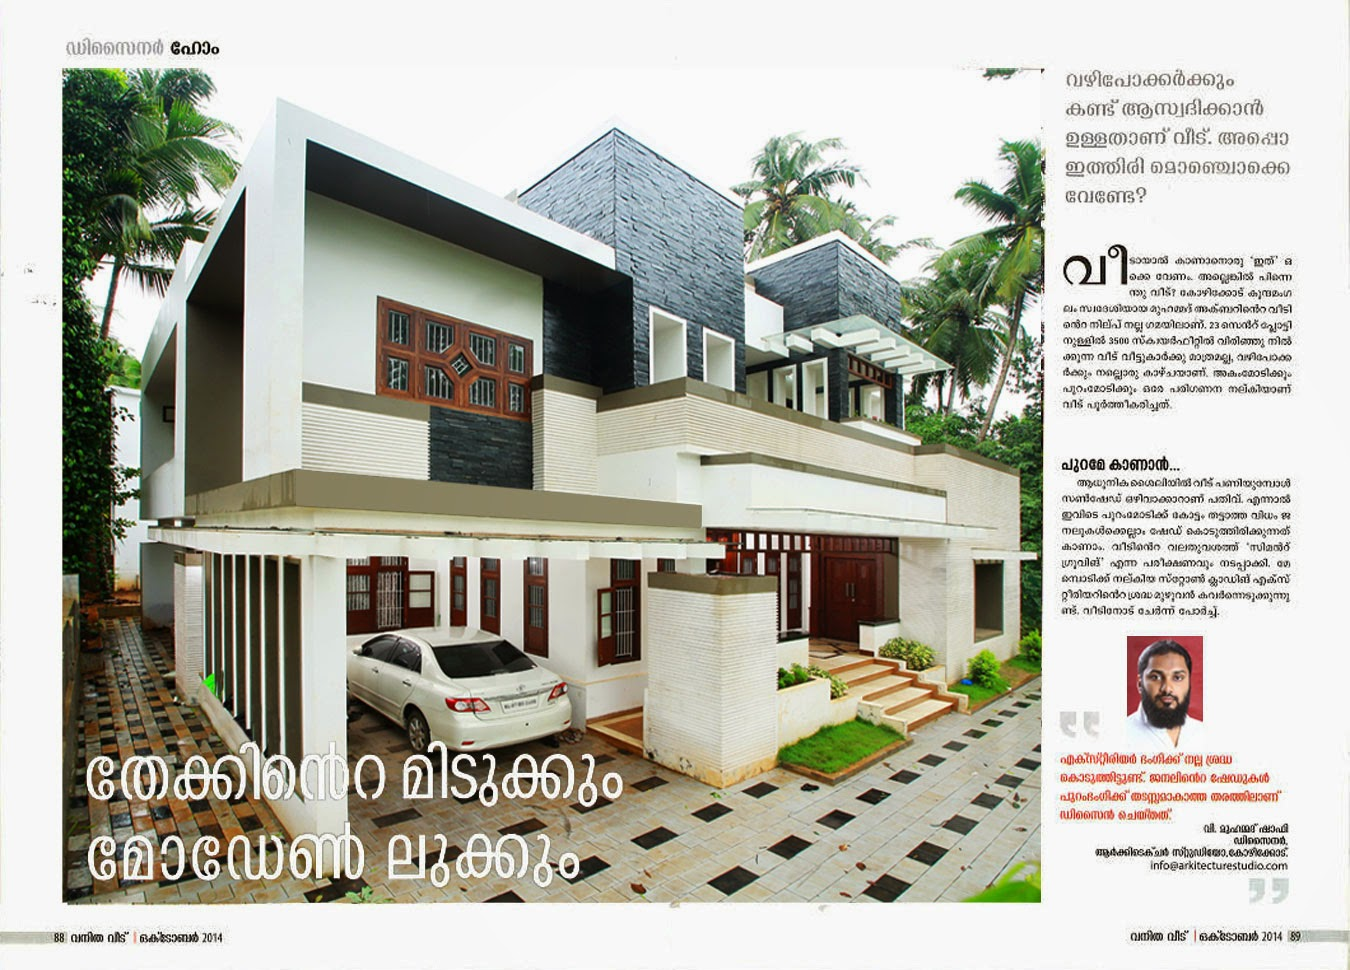 Arkitecture studio architects interior designers and for Kerala veedu design